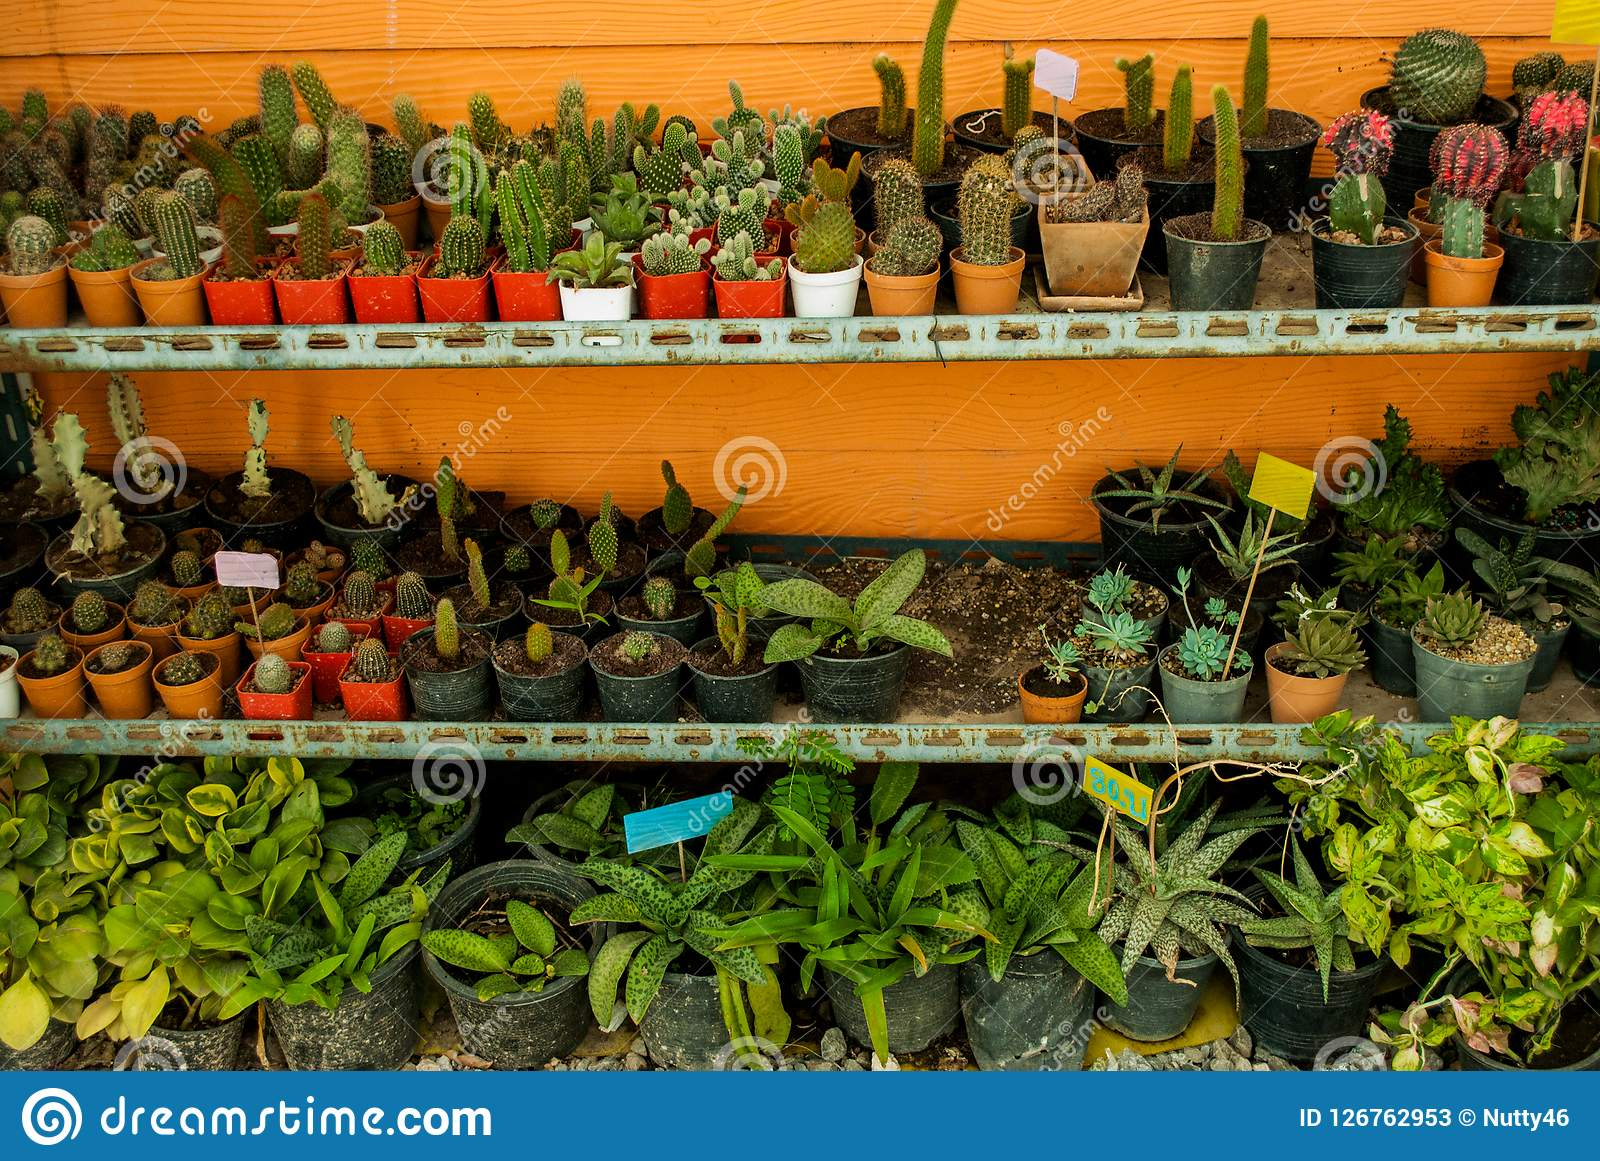 Cactus and many varieties of plants in pots